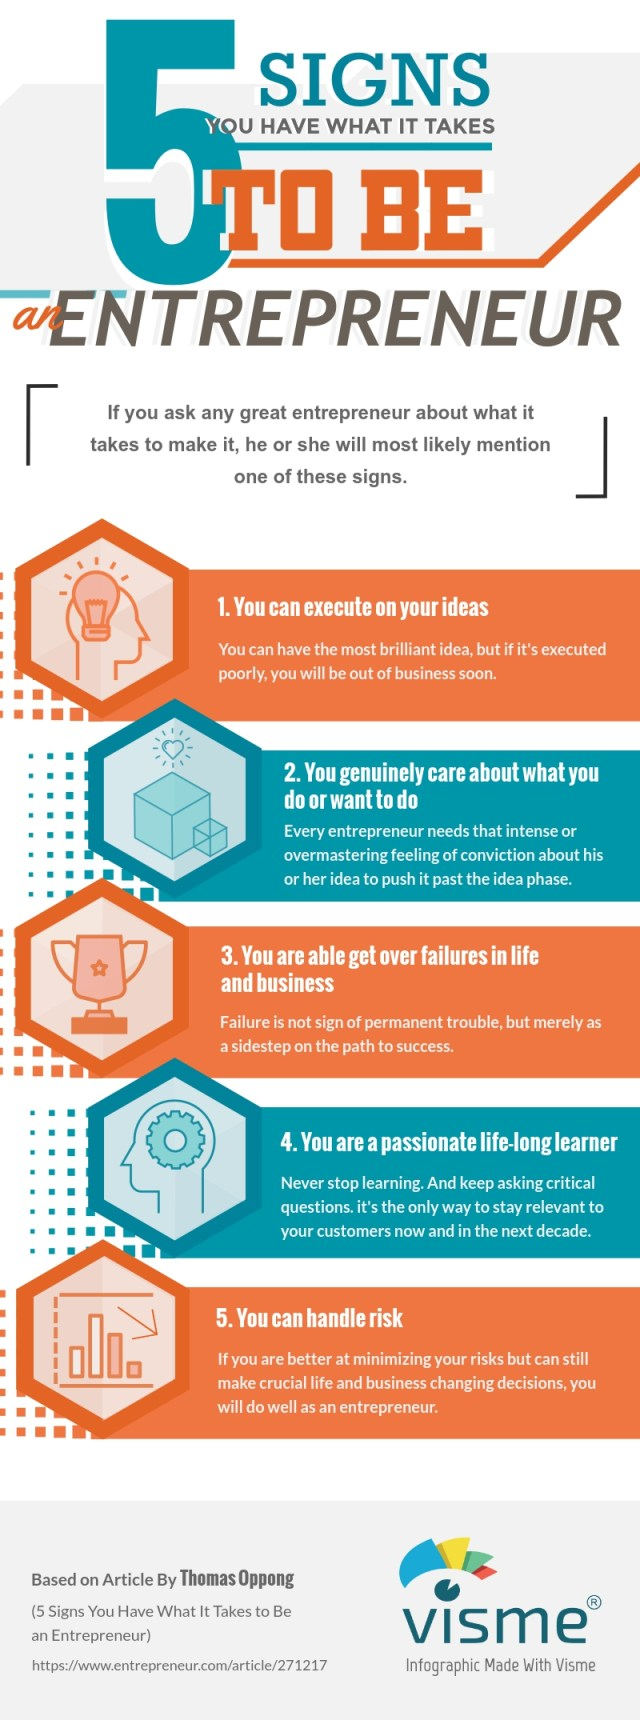 Signs You Have What It Takes to Be an Entrepreneur